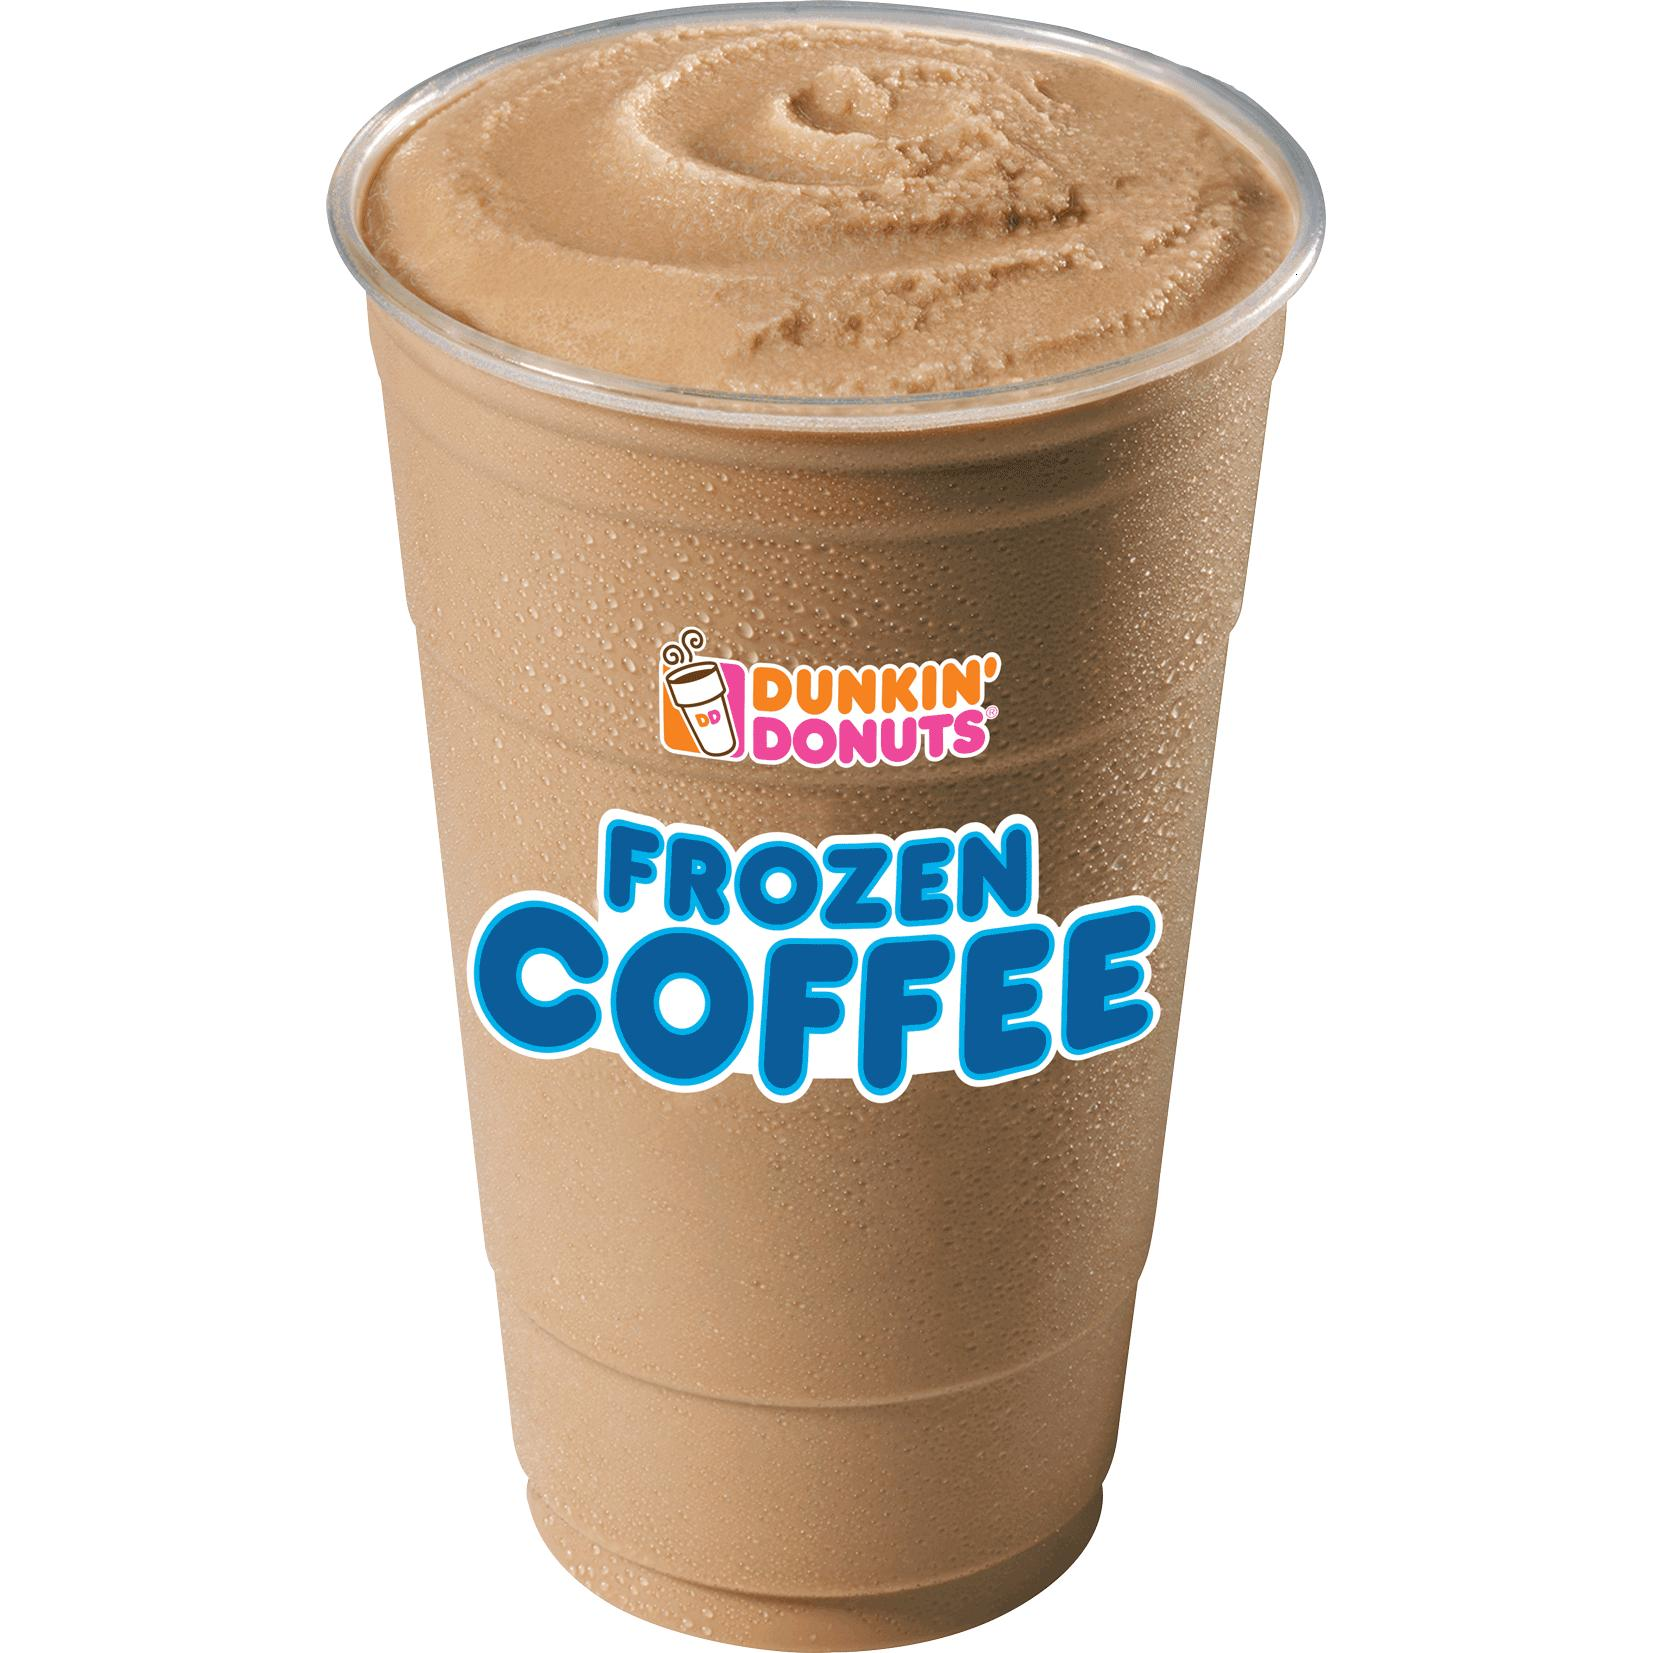 Free Frozen Dunkin Donuts Coffee 10am to 2pm